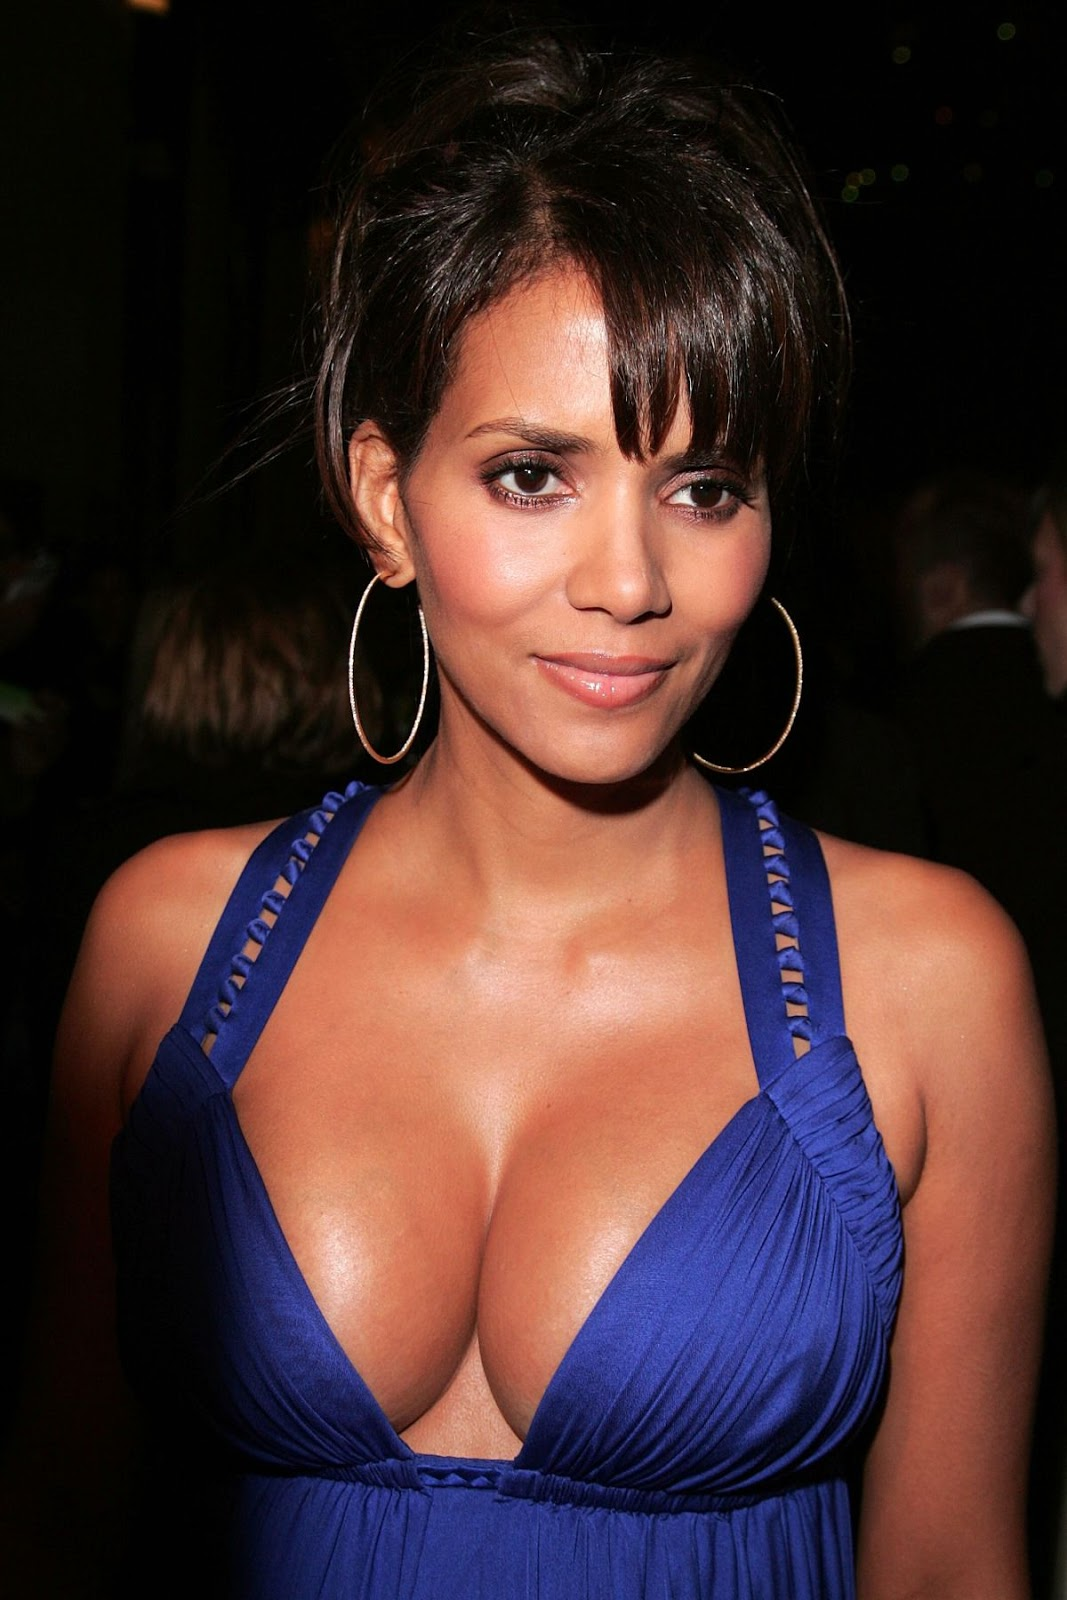 EXTANT (2014): Halle Berry cast in Speilberg Produced CBS ... Halle Berry